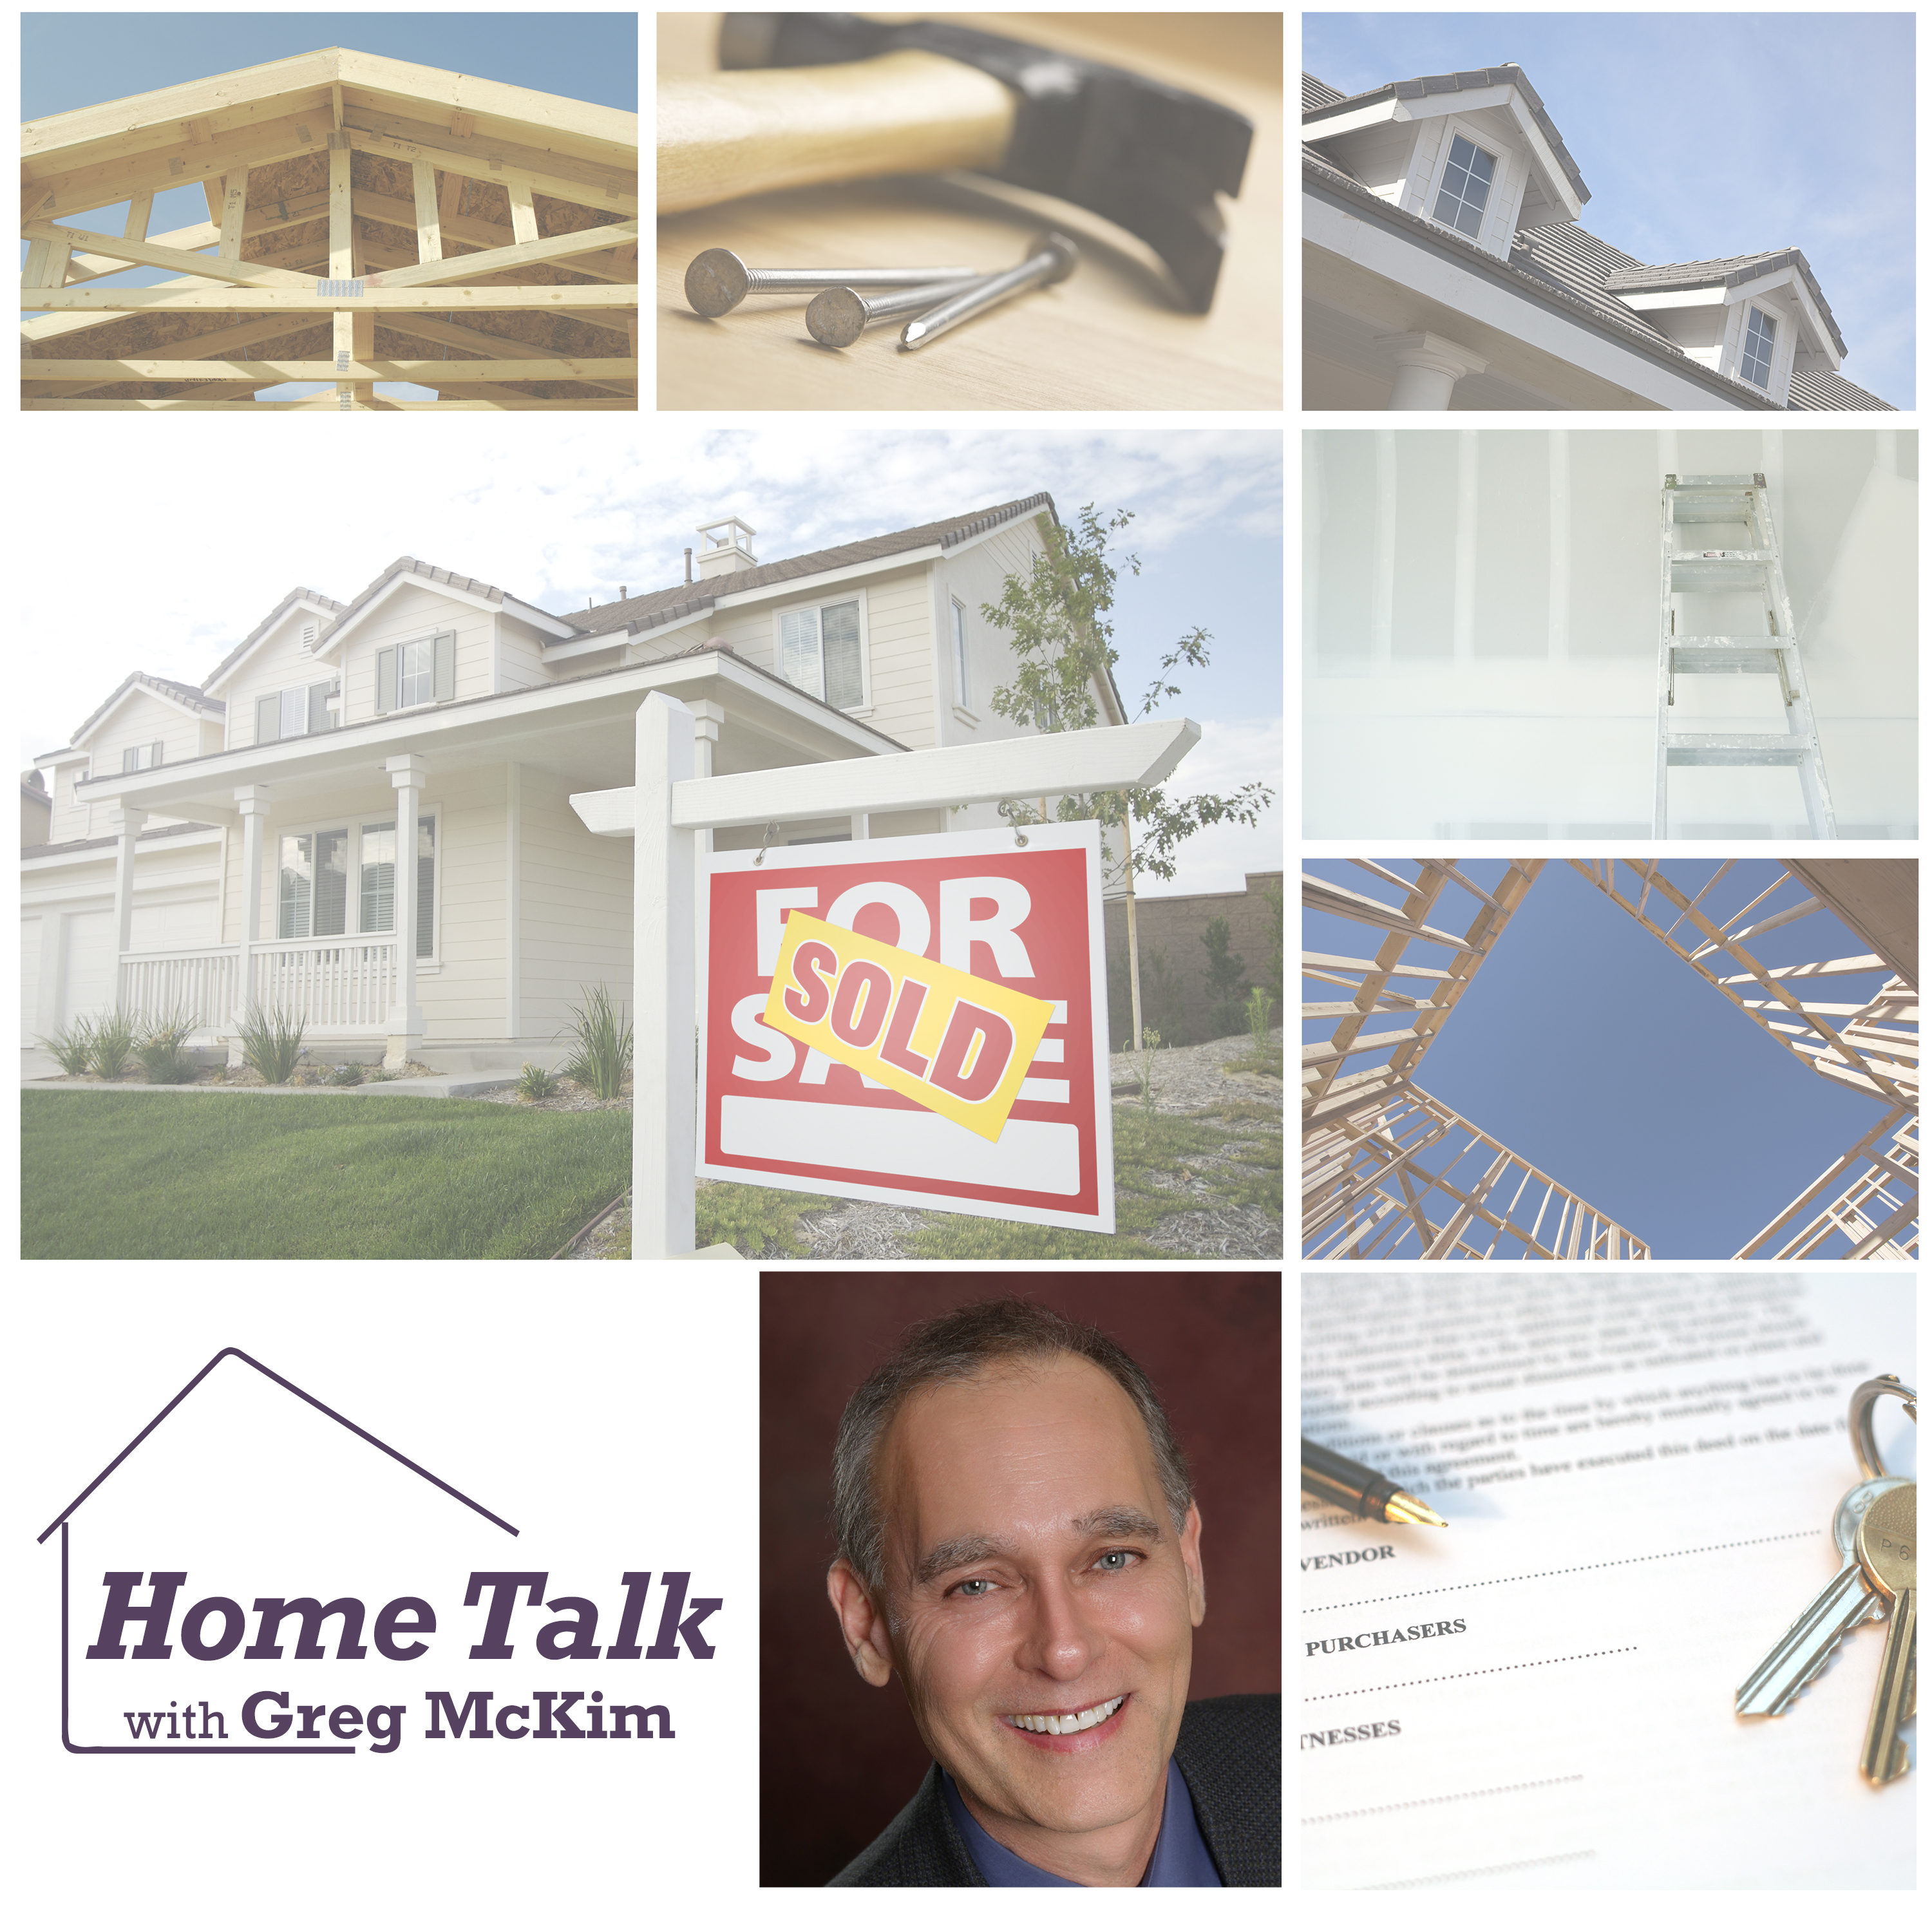 Home Talk with Greg McKim